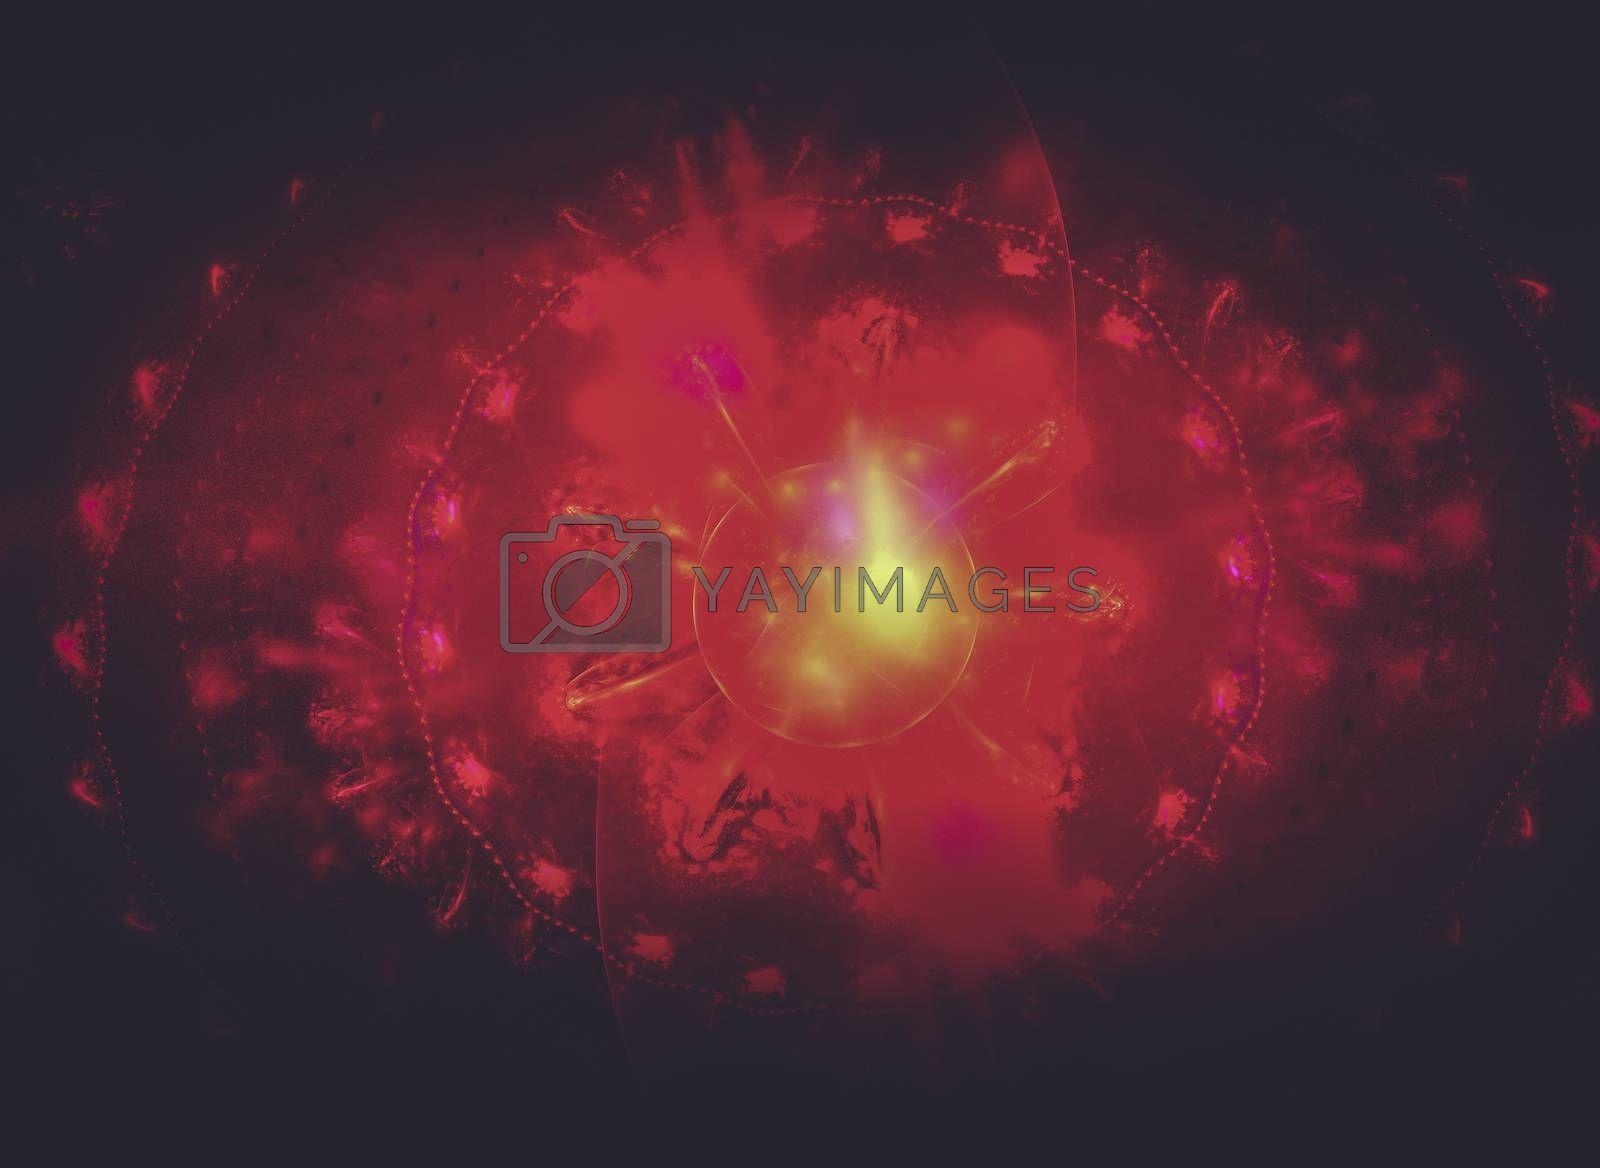 Creative design background, fractal styles with color design of dreamy forms on the subject of dream, imagination and fantasy